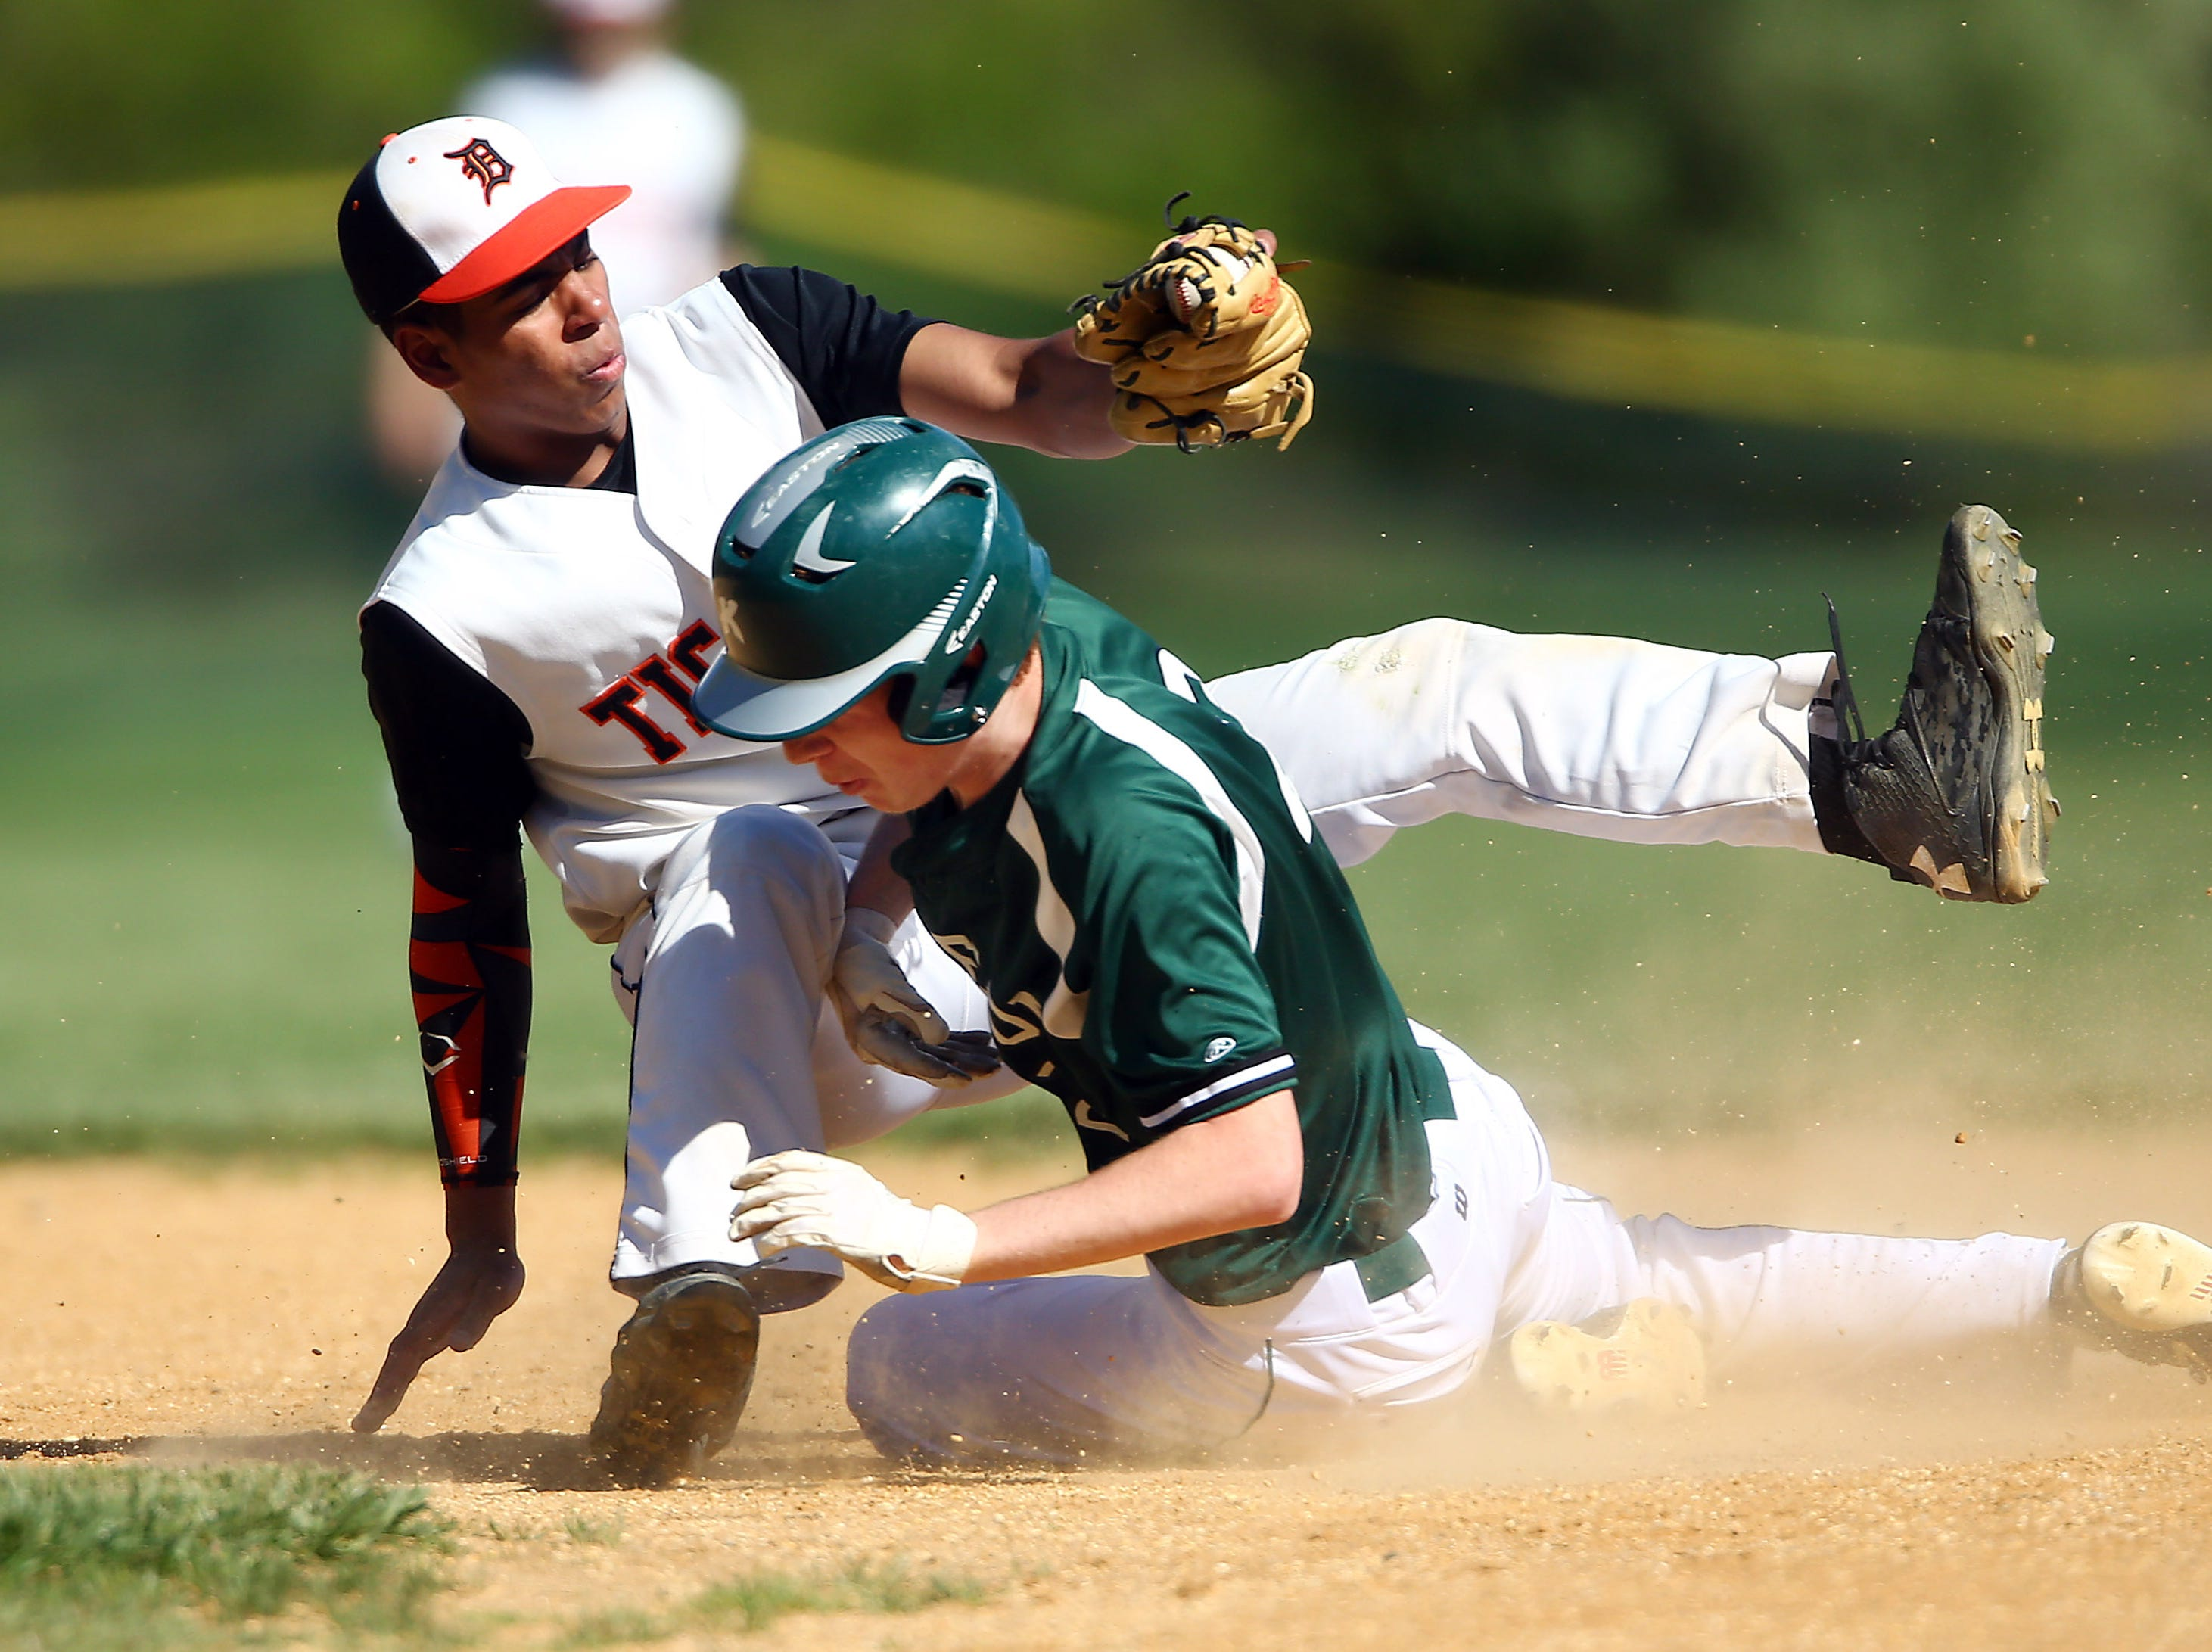 Kinnelon High School's Ben Stickle collides with Dover shortstop Josh Blackwell but is tagged out on a first inning steal. May 11, 2018. Dover, NJ